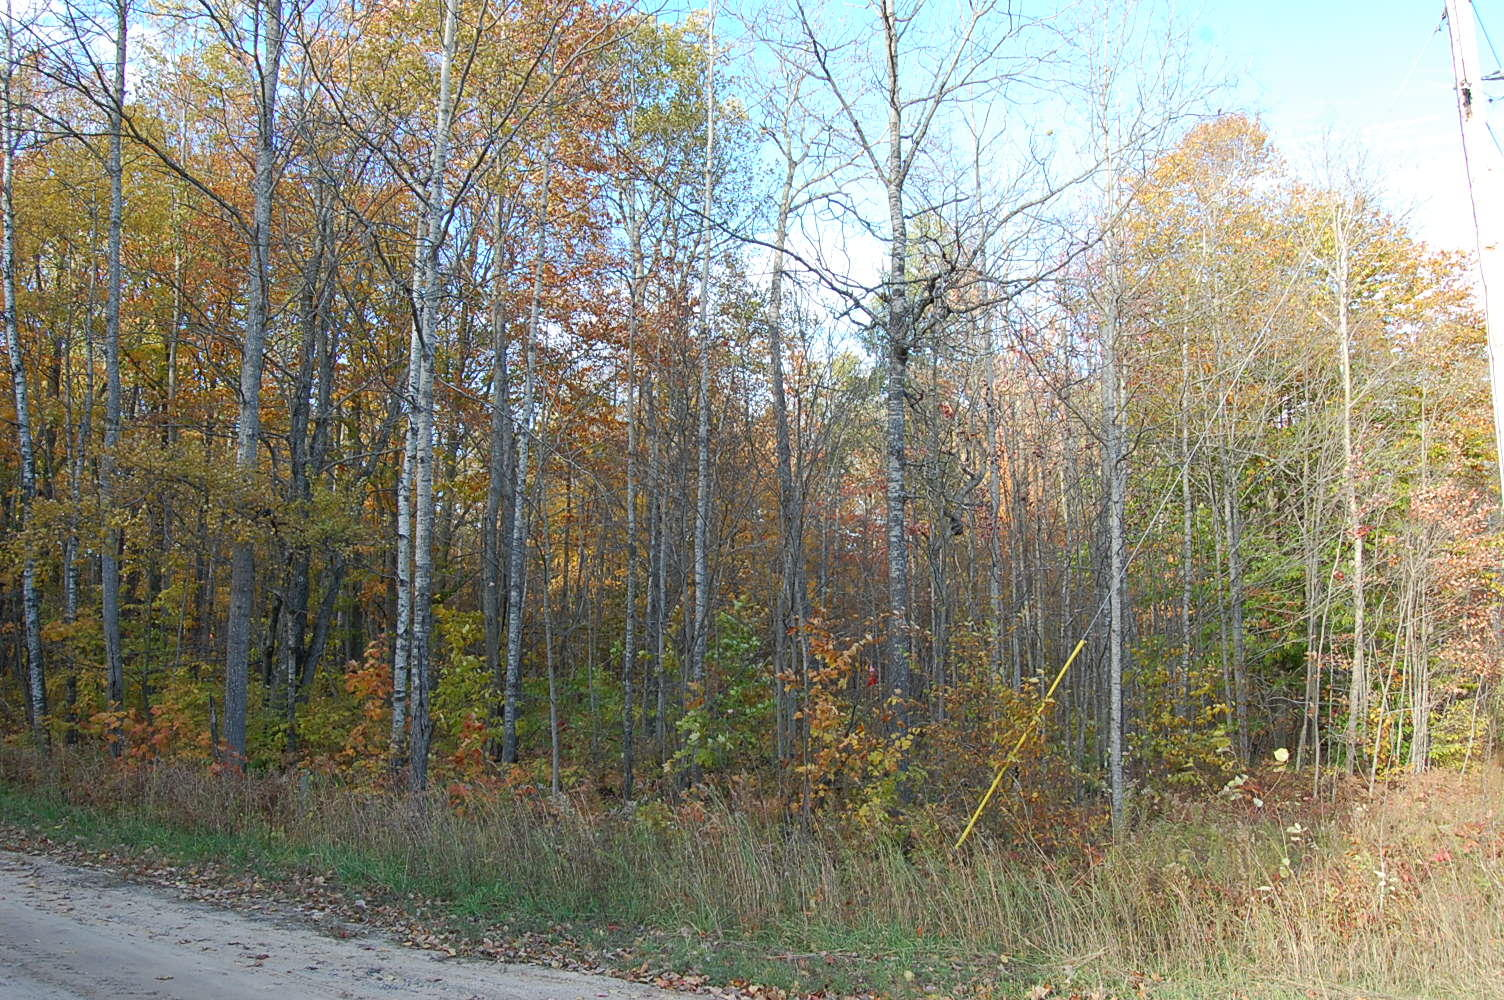 More than Half Acre in Picturesque Michigan - Image 5